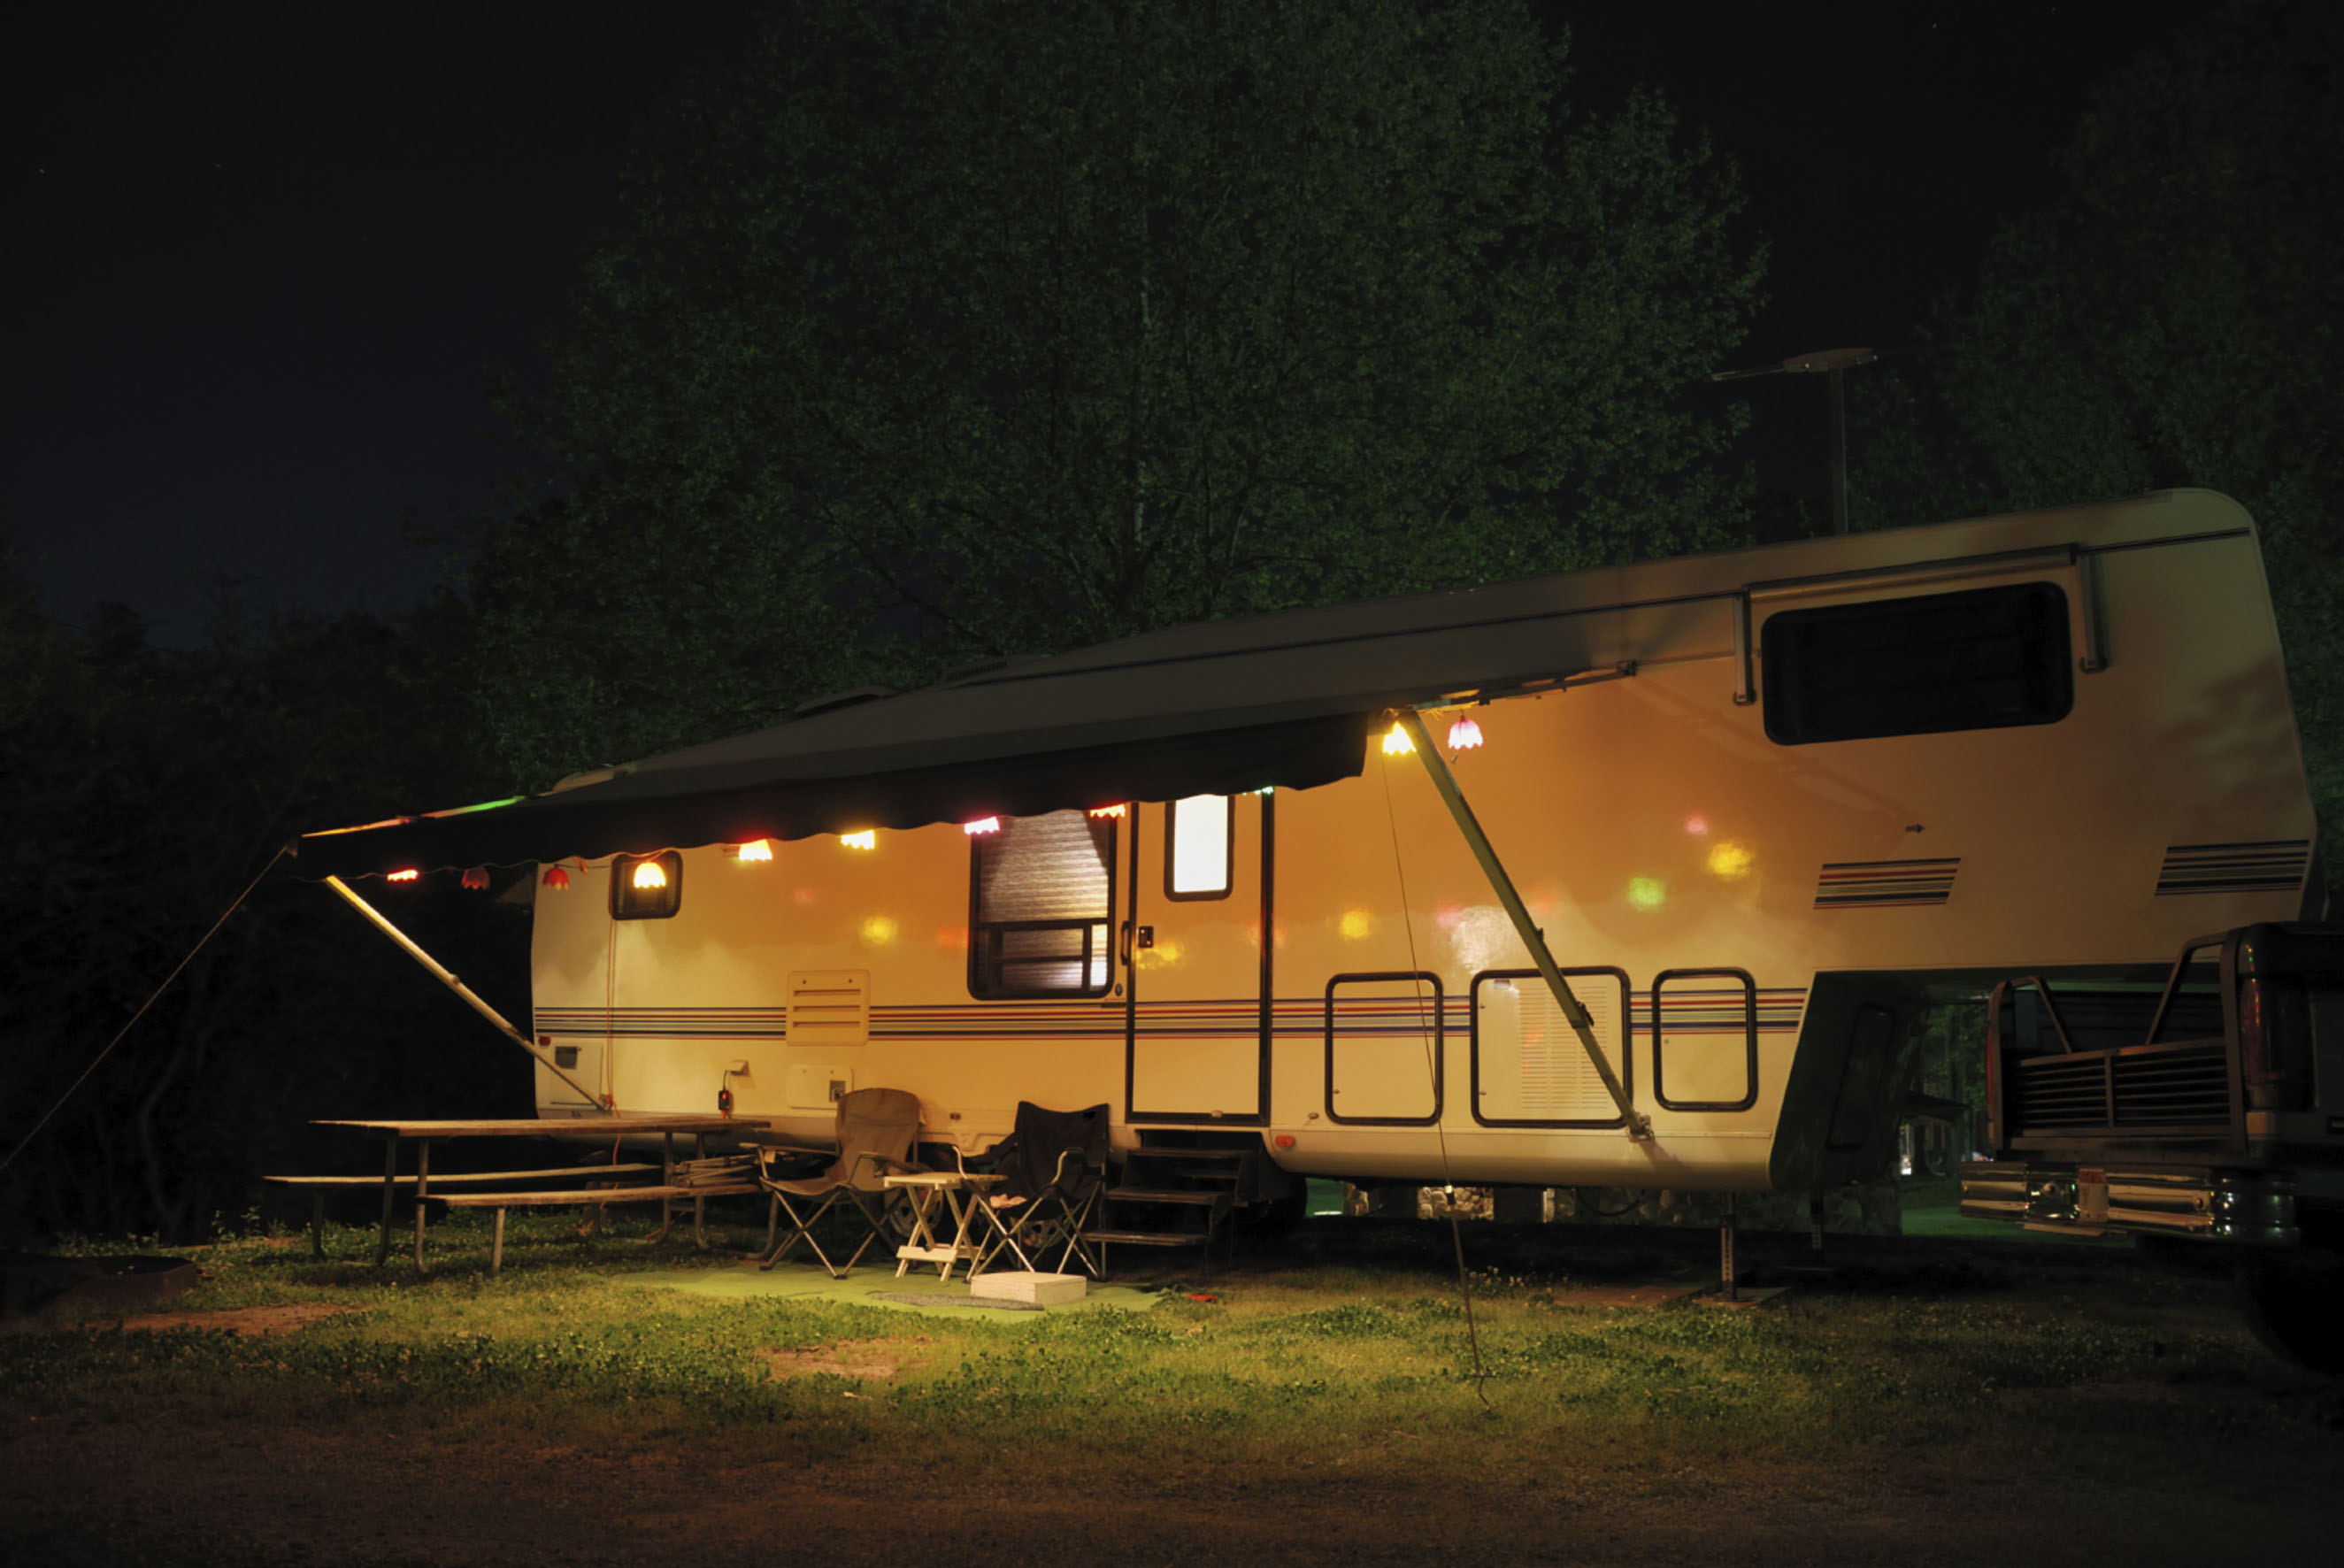 Camping at night vakantiebeurs blog camper